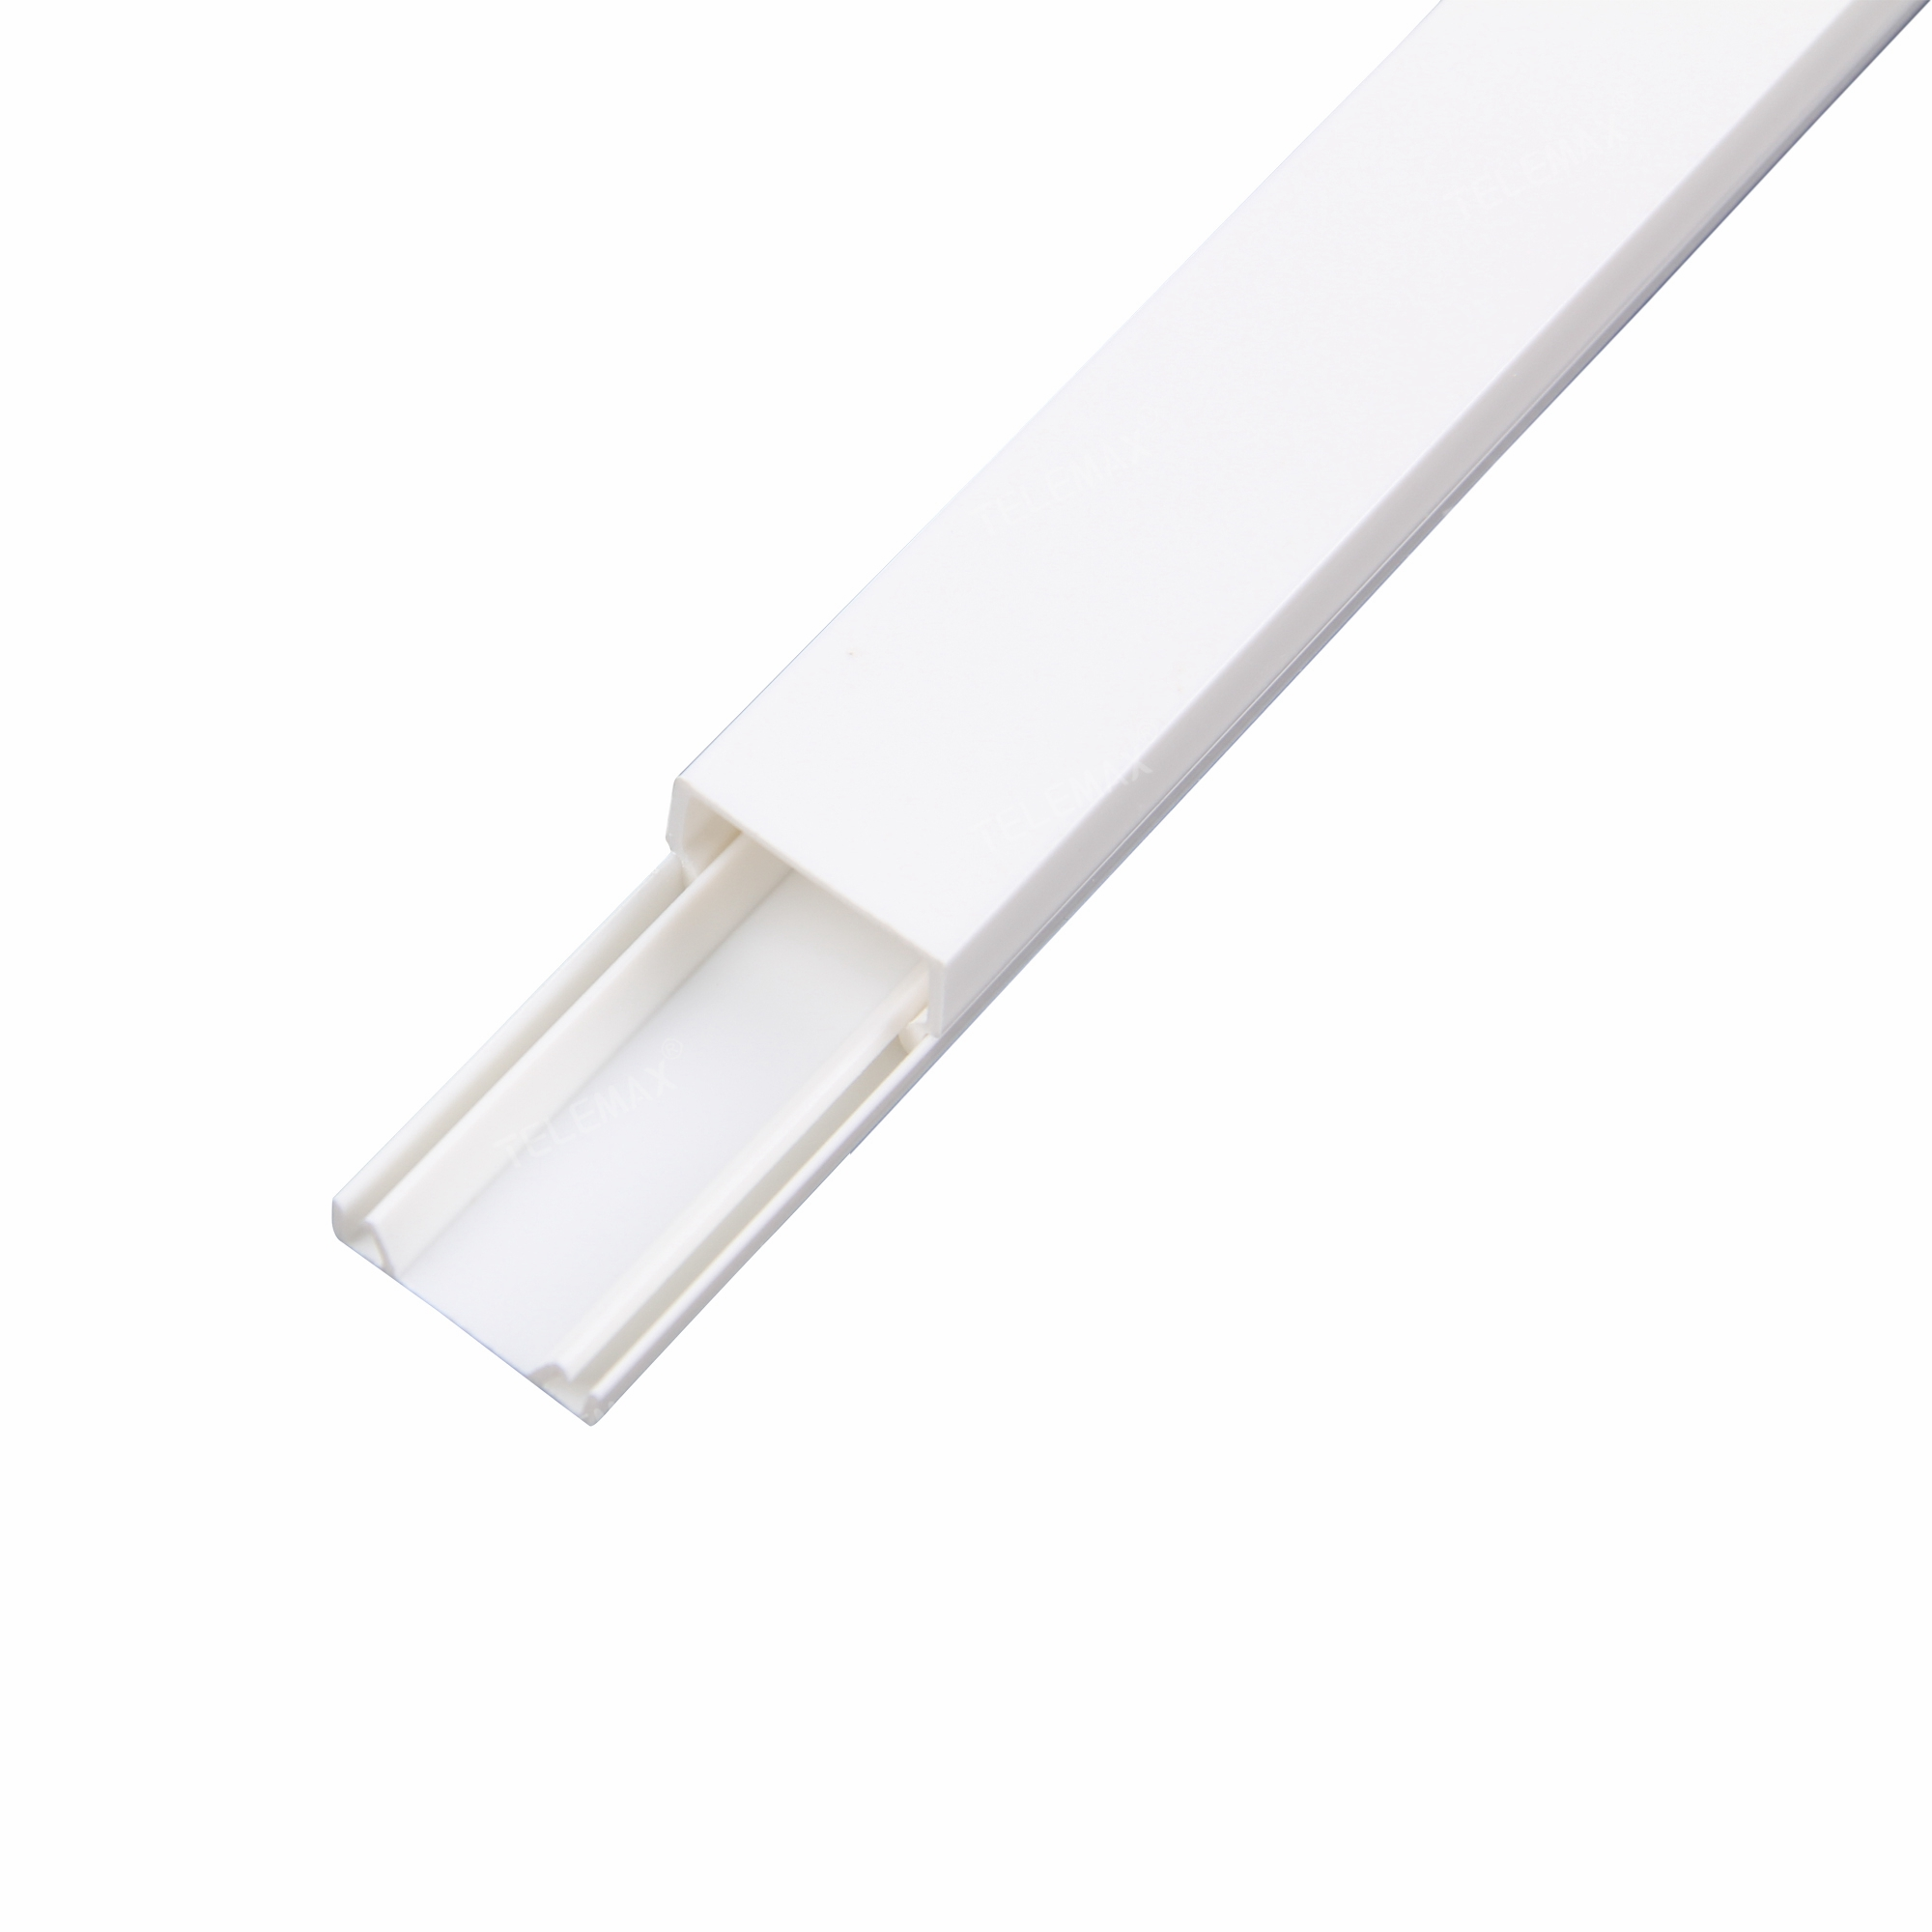 Wire PVC Trunking, Light in weight, Weather proof